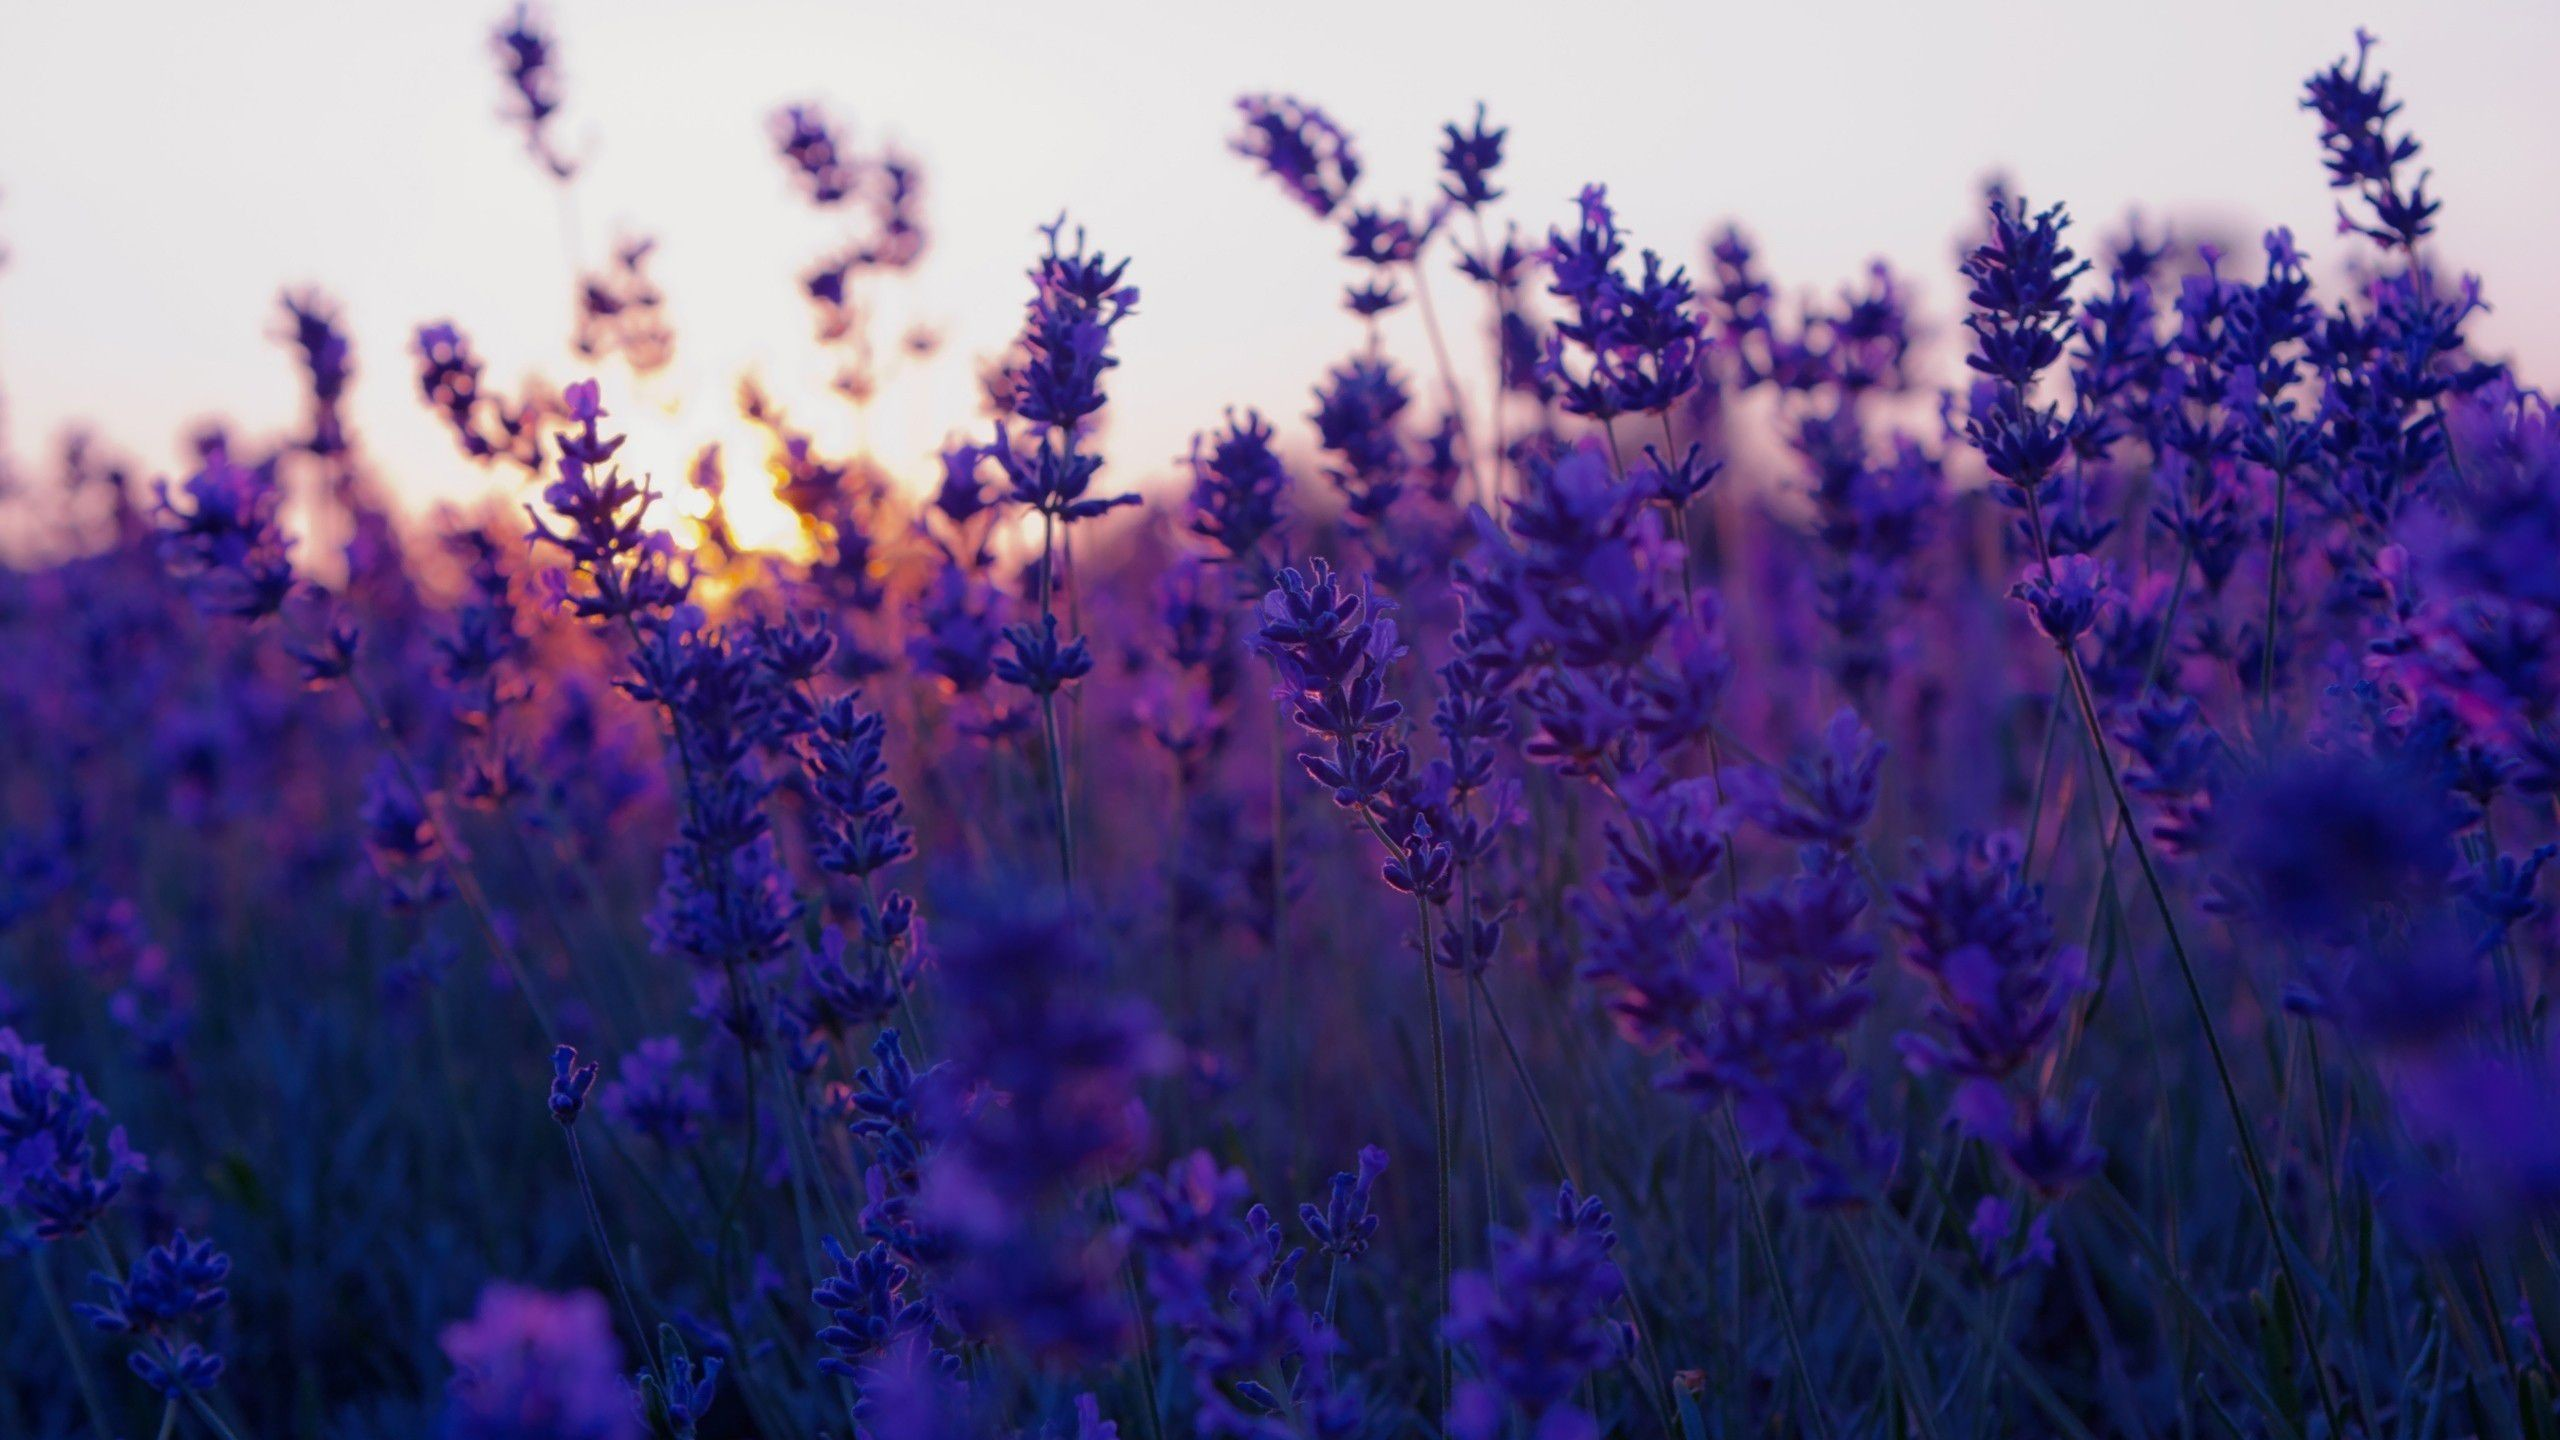 2560x1440 Lavender Background